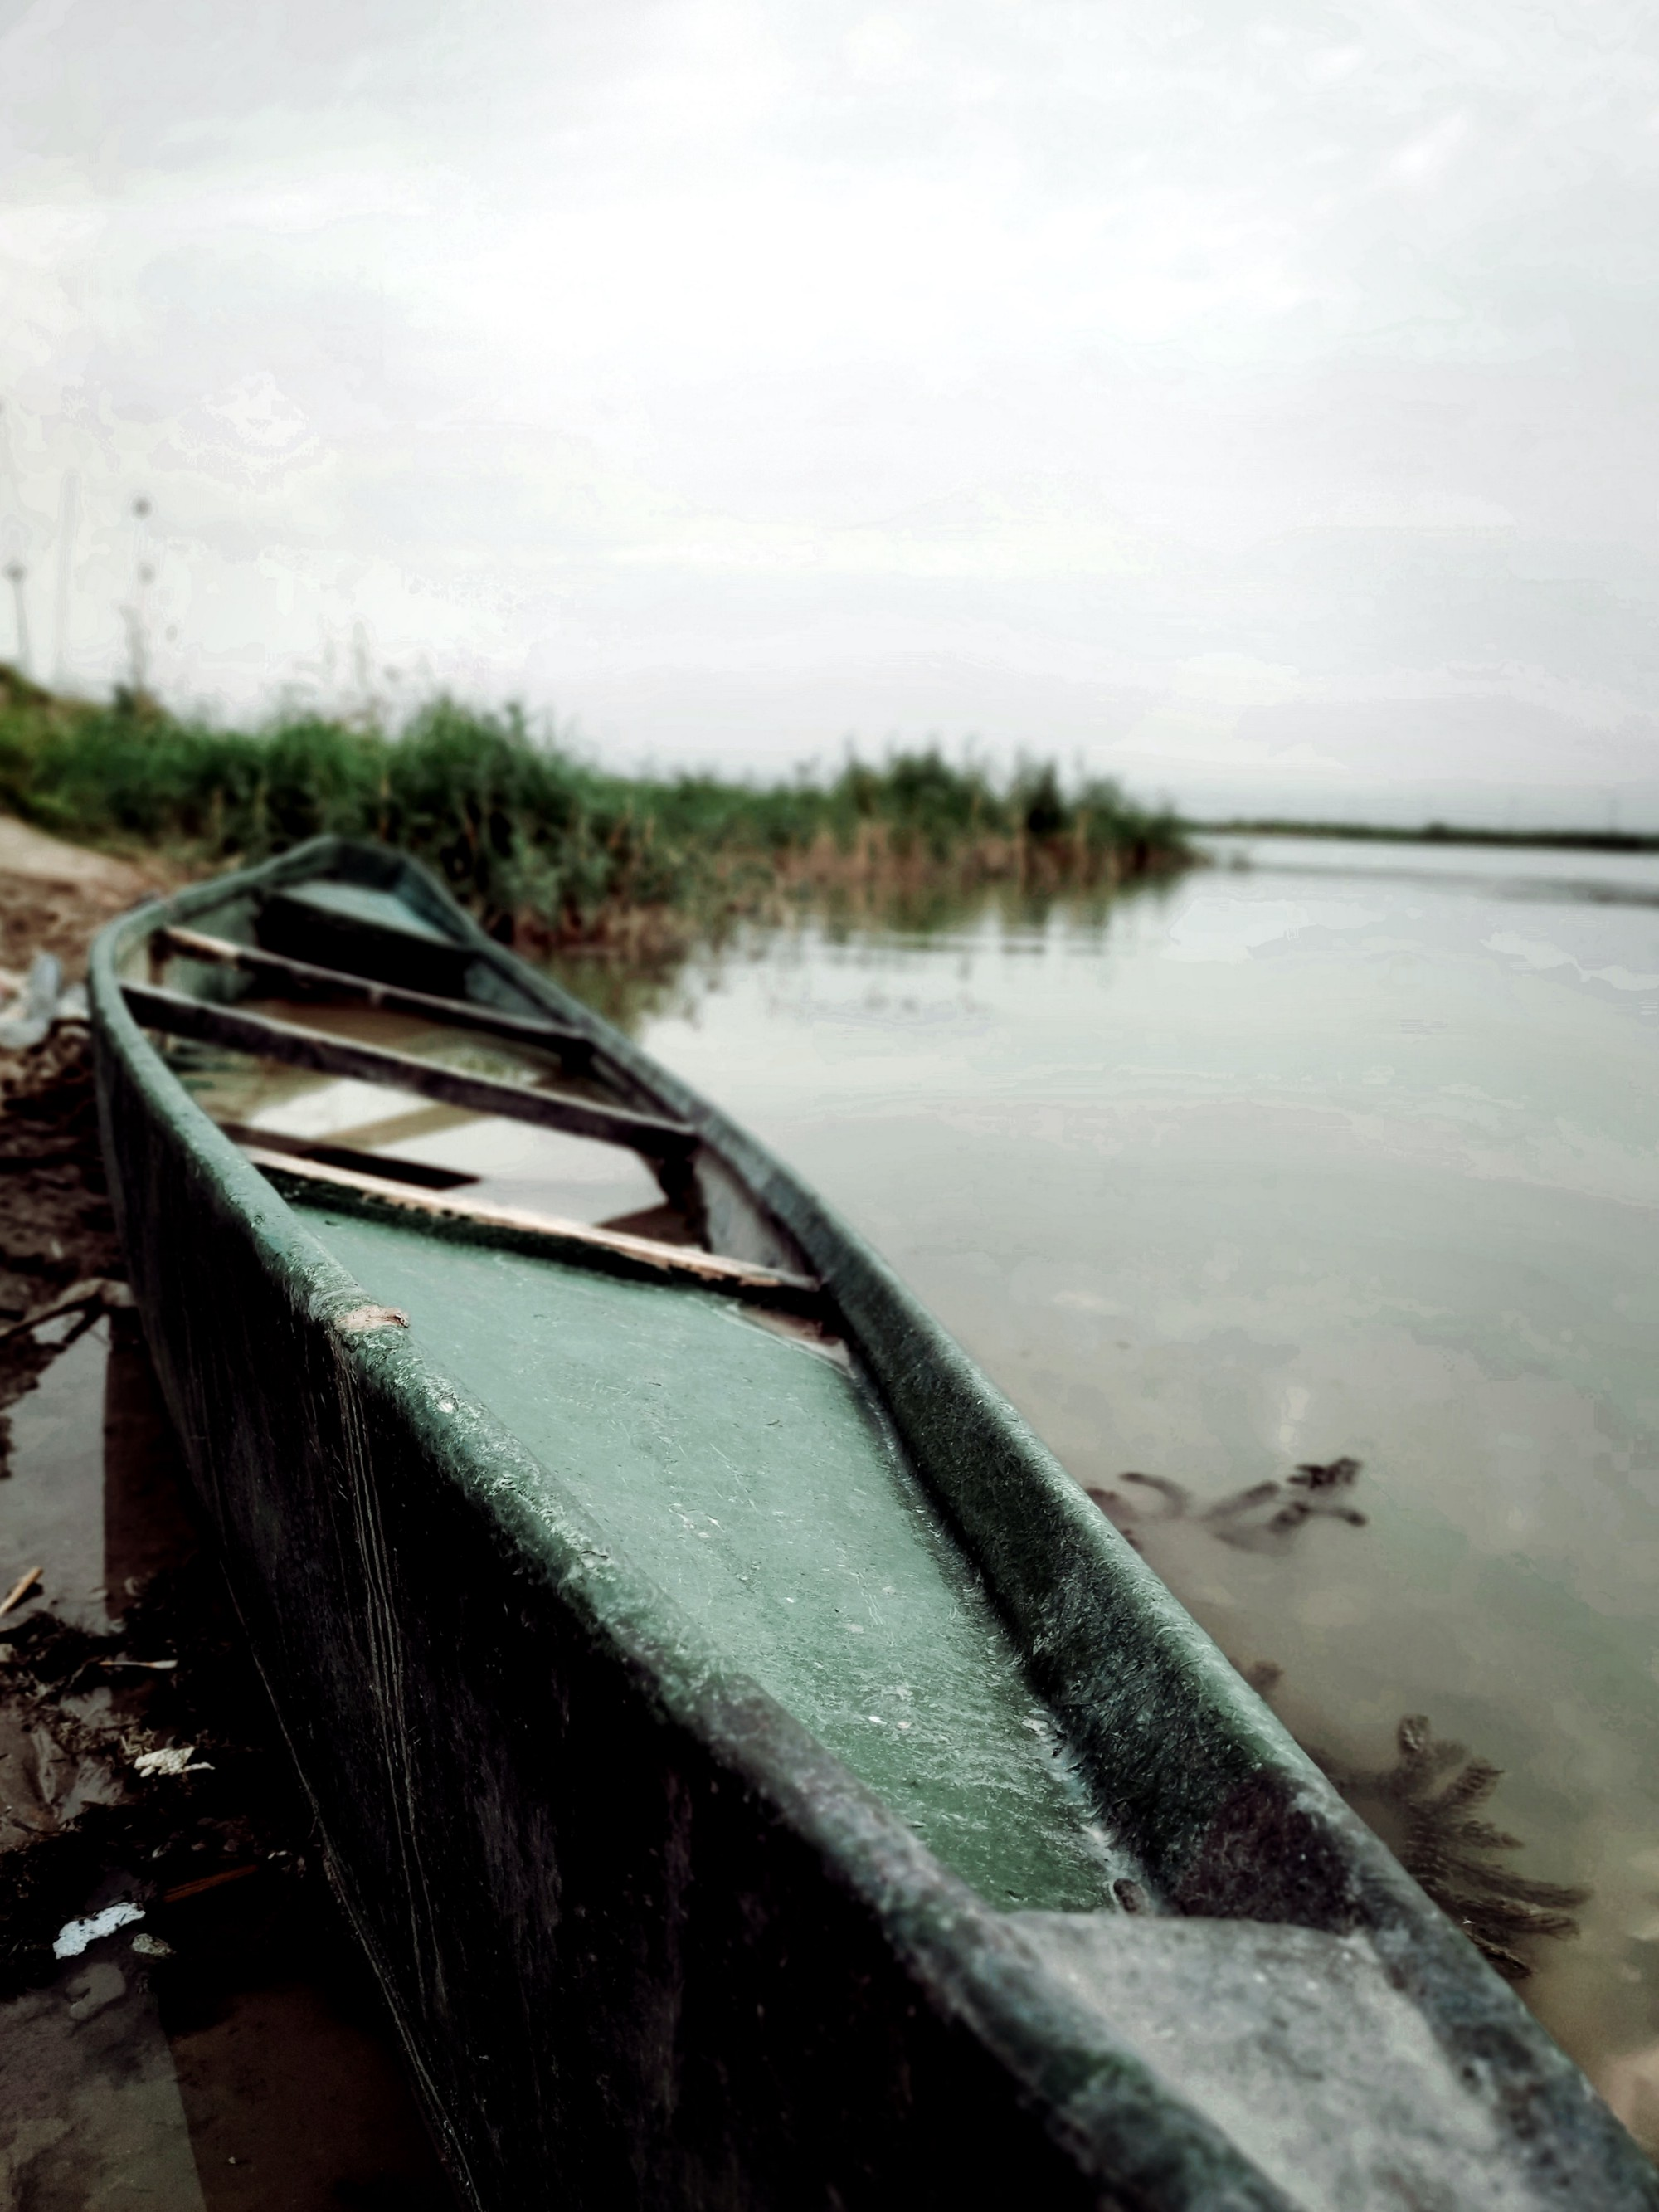 well-worn canoe resting on the shoreline in front of reeds